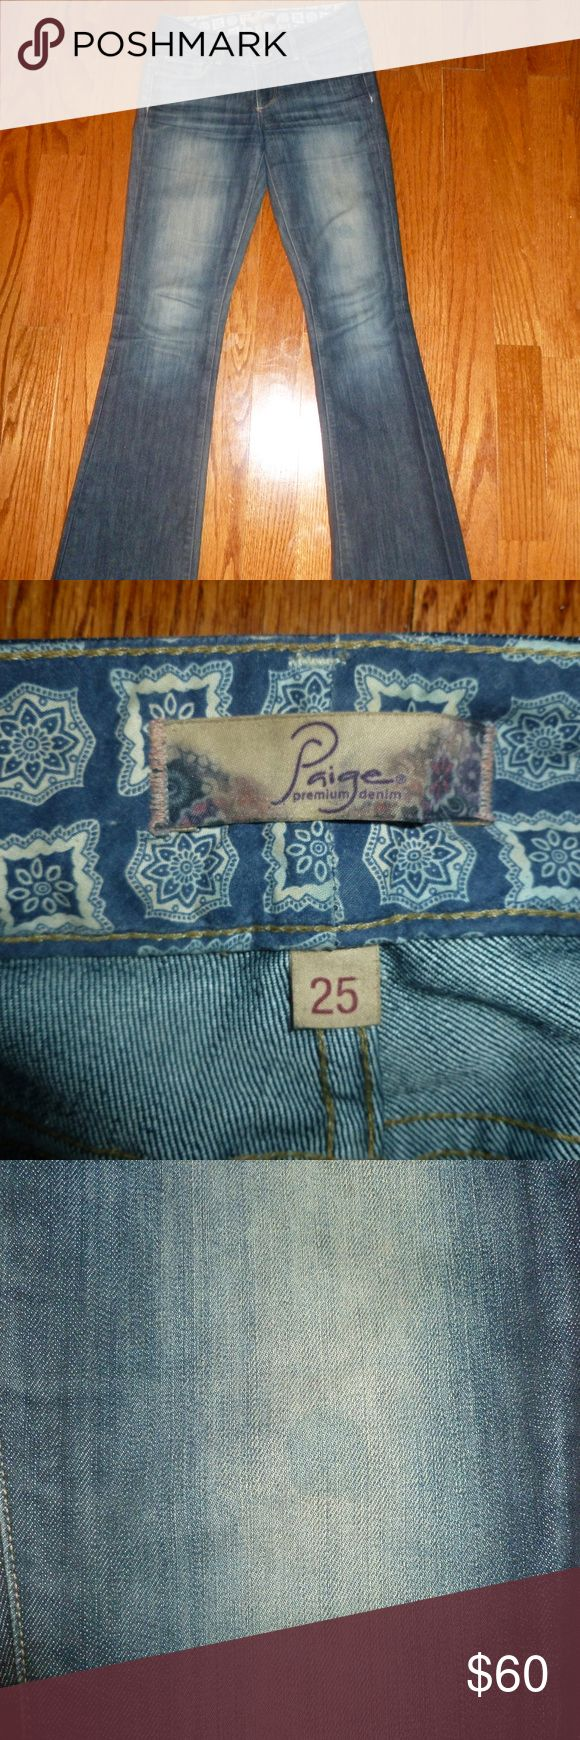 Paige Transcend Hidden Hills Jeans Size 25 Jeans have a round stain on upper thigh in front (third image shows stain). Were hemmed by Nordstrom after purchase.  Boot cut. I dried them so they're a little smaller than the original size. Paige Jeans Jeans Boot Cut